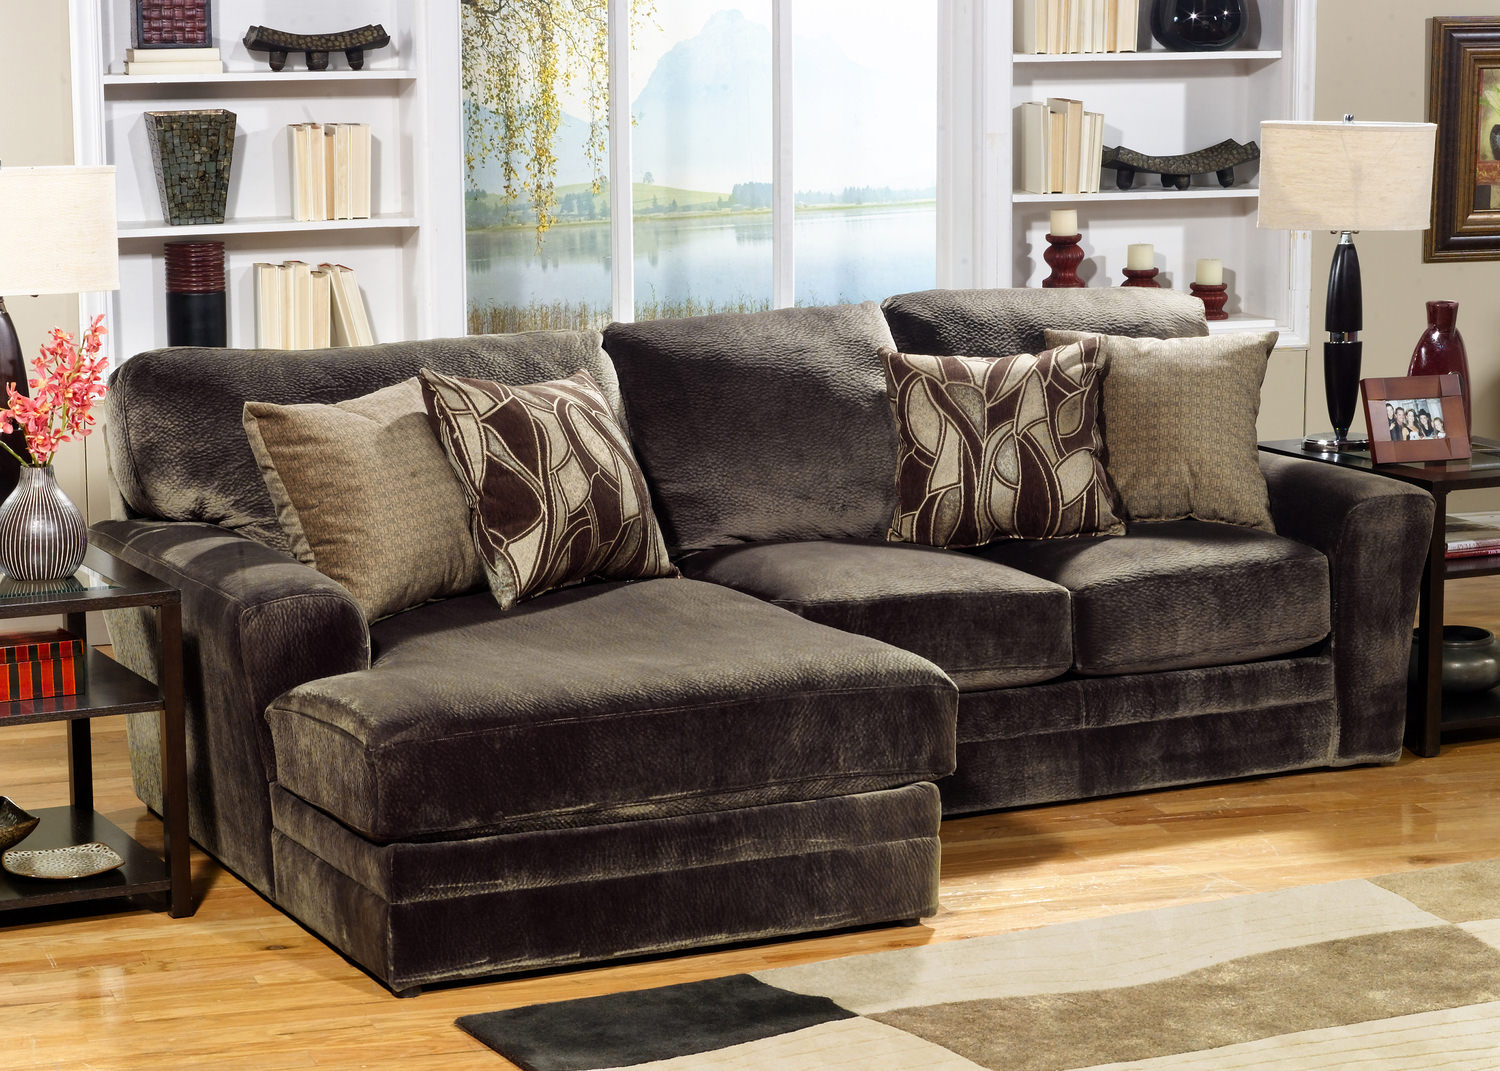 Rainier 2 Piece Modular Sectional